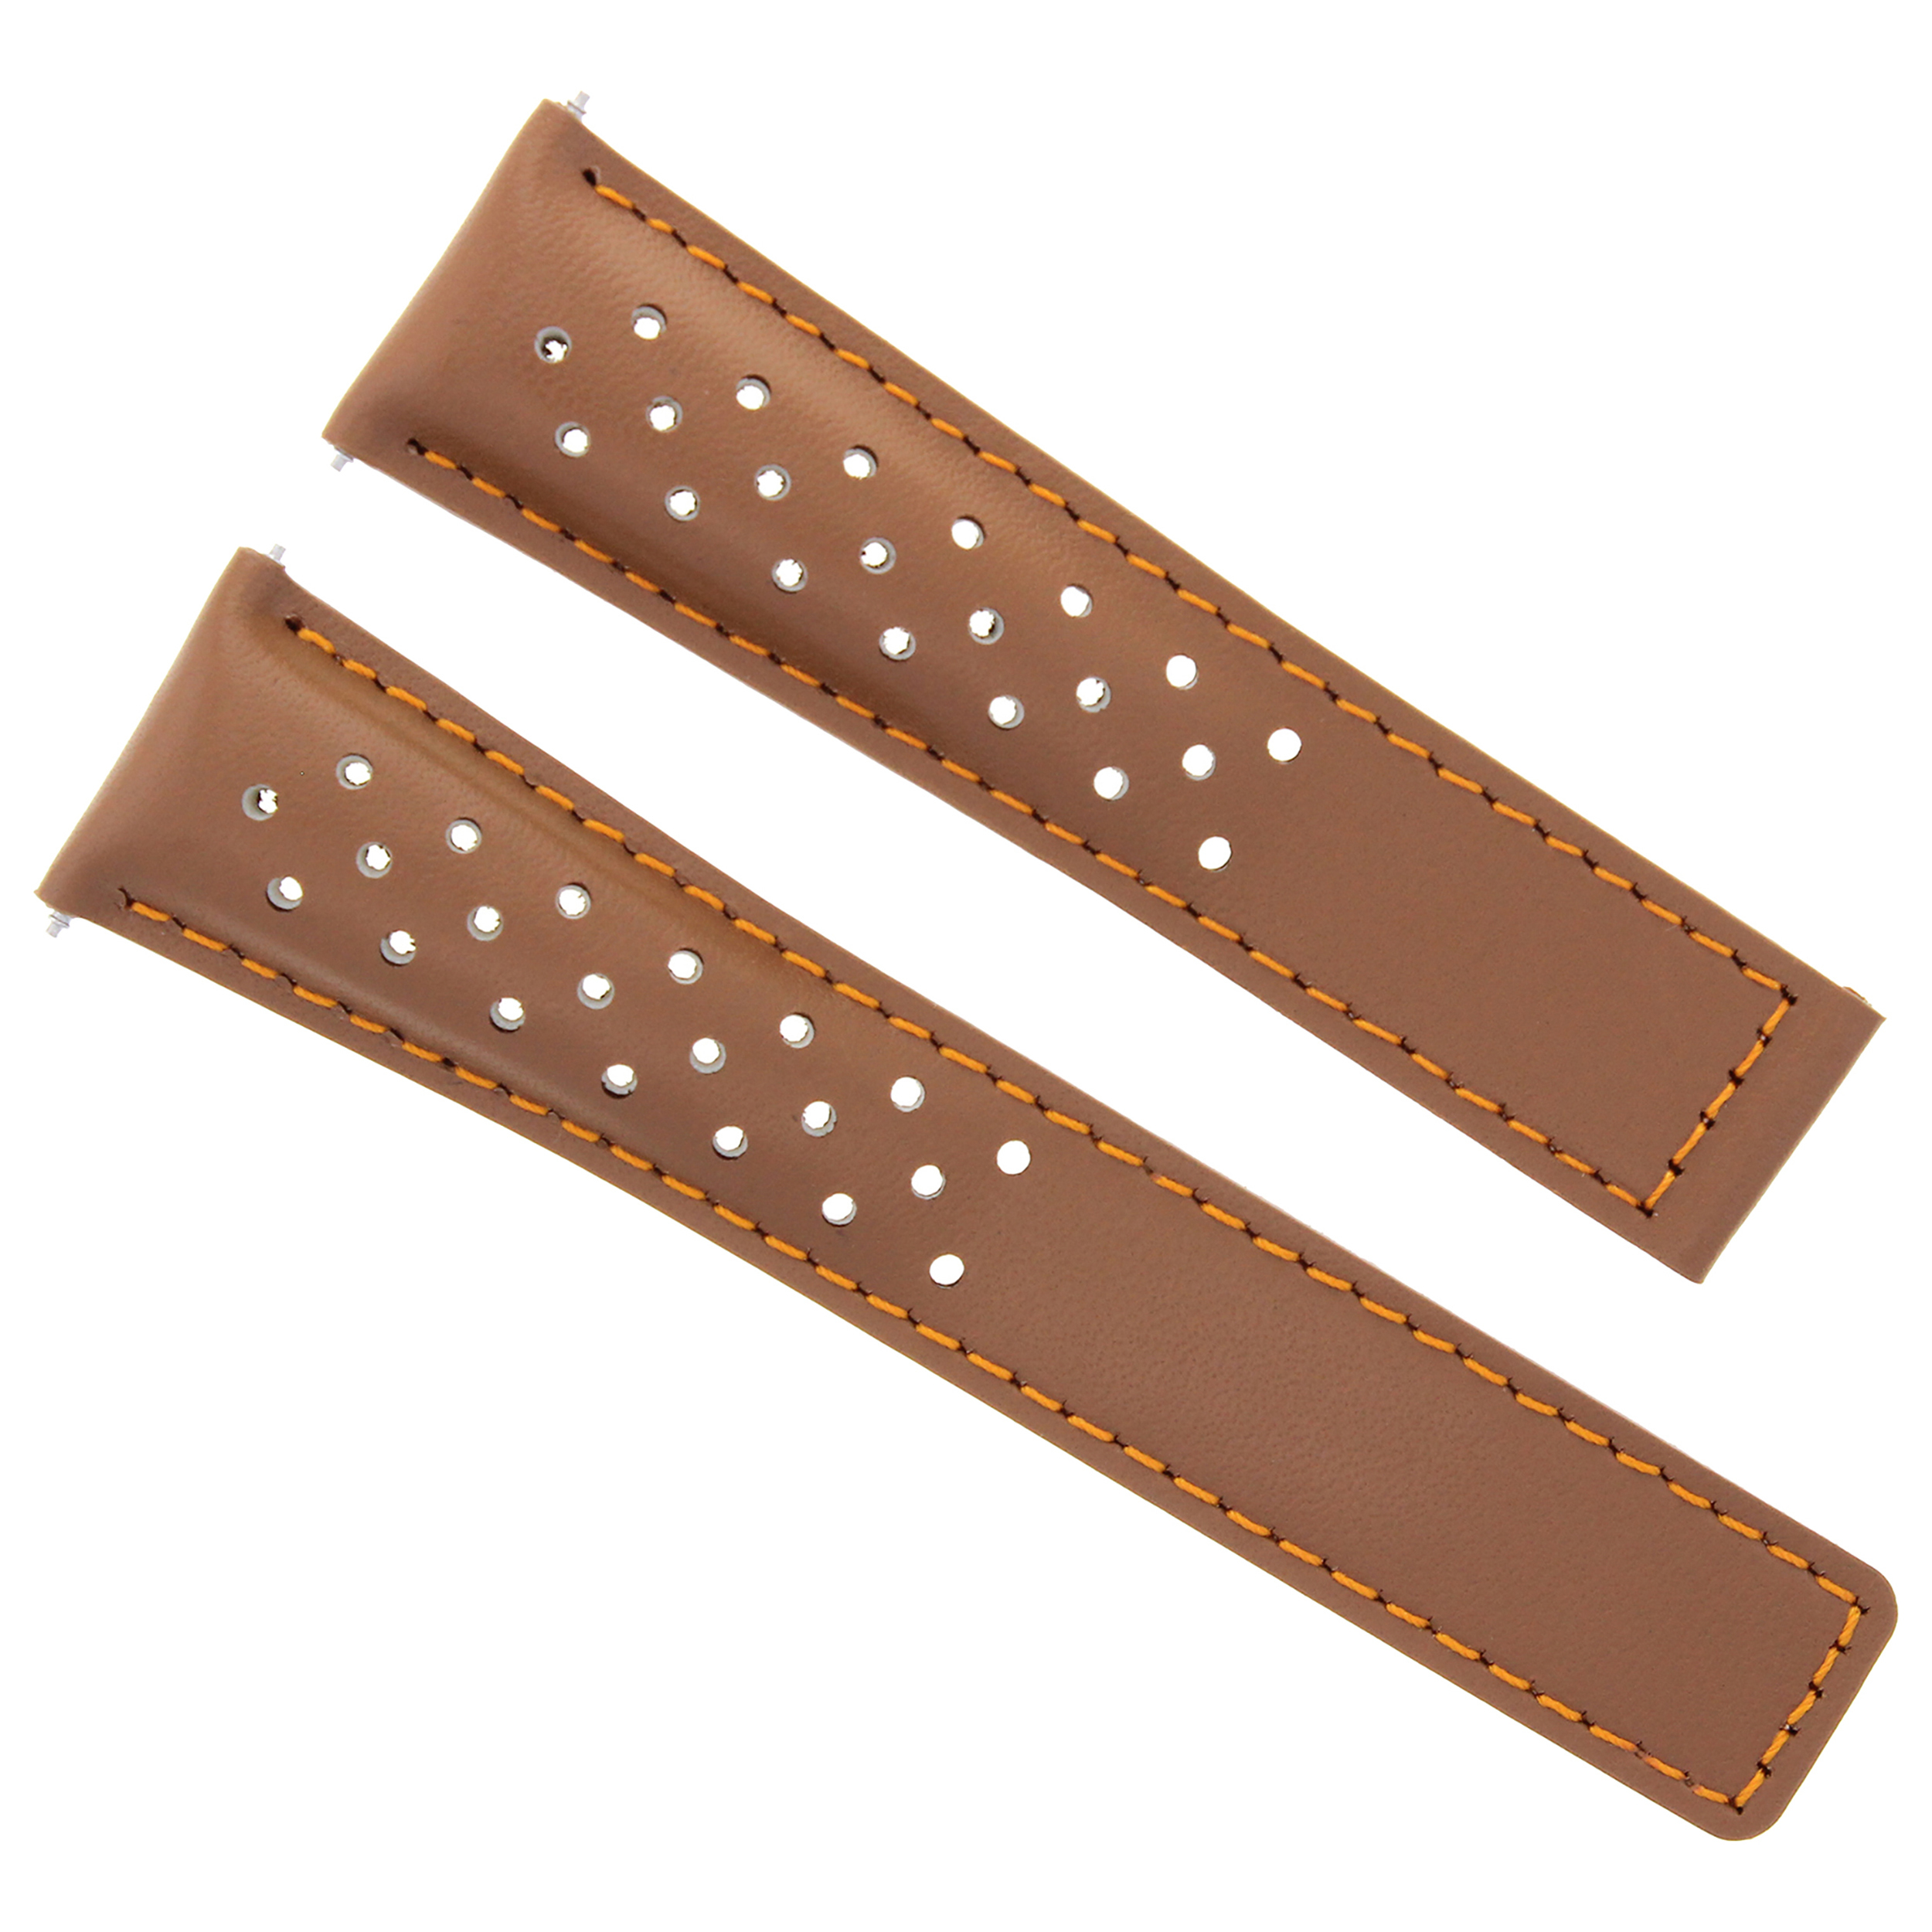 LEATHER WATCH STRAP 20MM FOR TAG HEUER CARRERA 1887 TAN 10T OS FC-5037-39-41